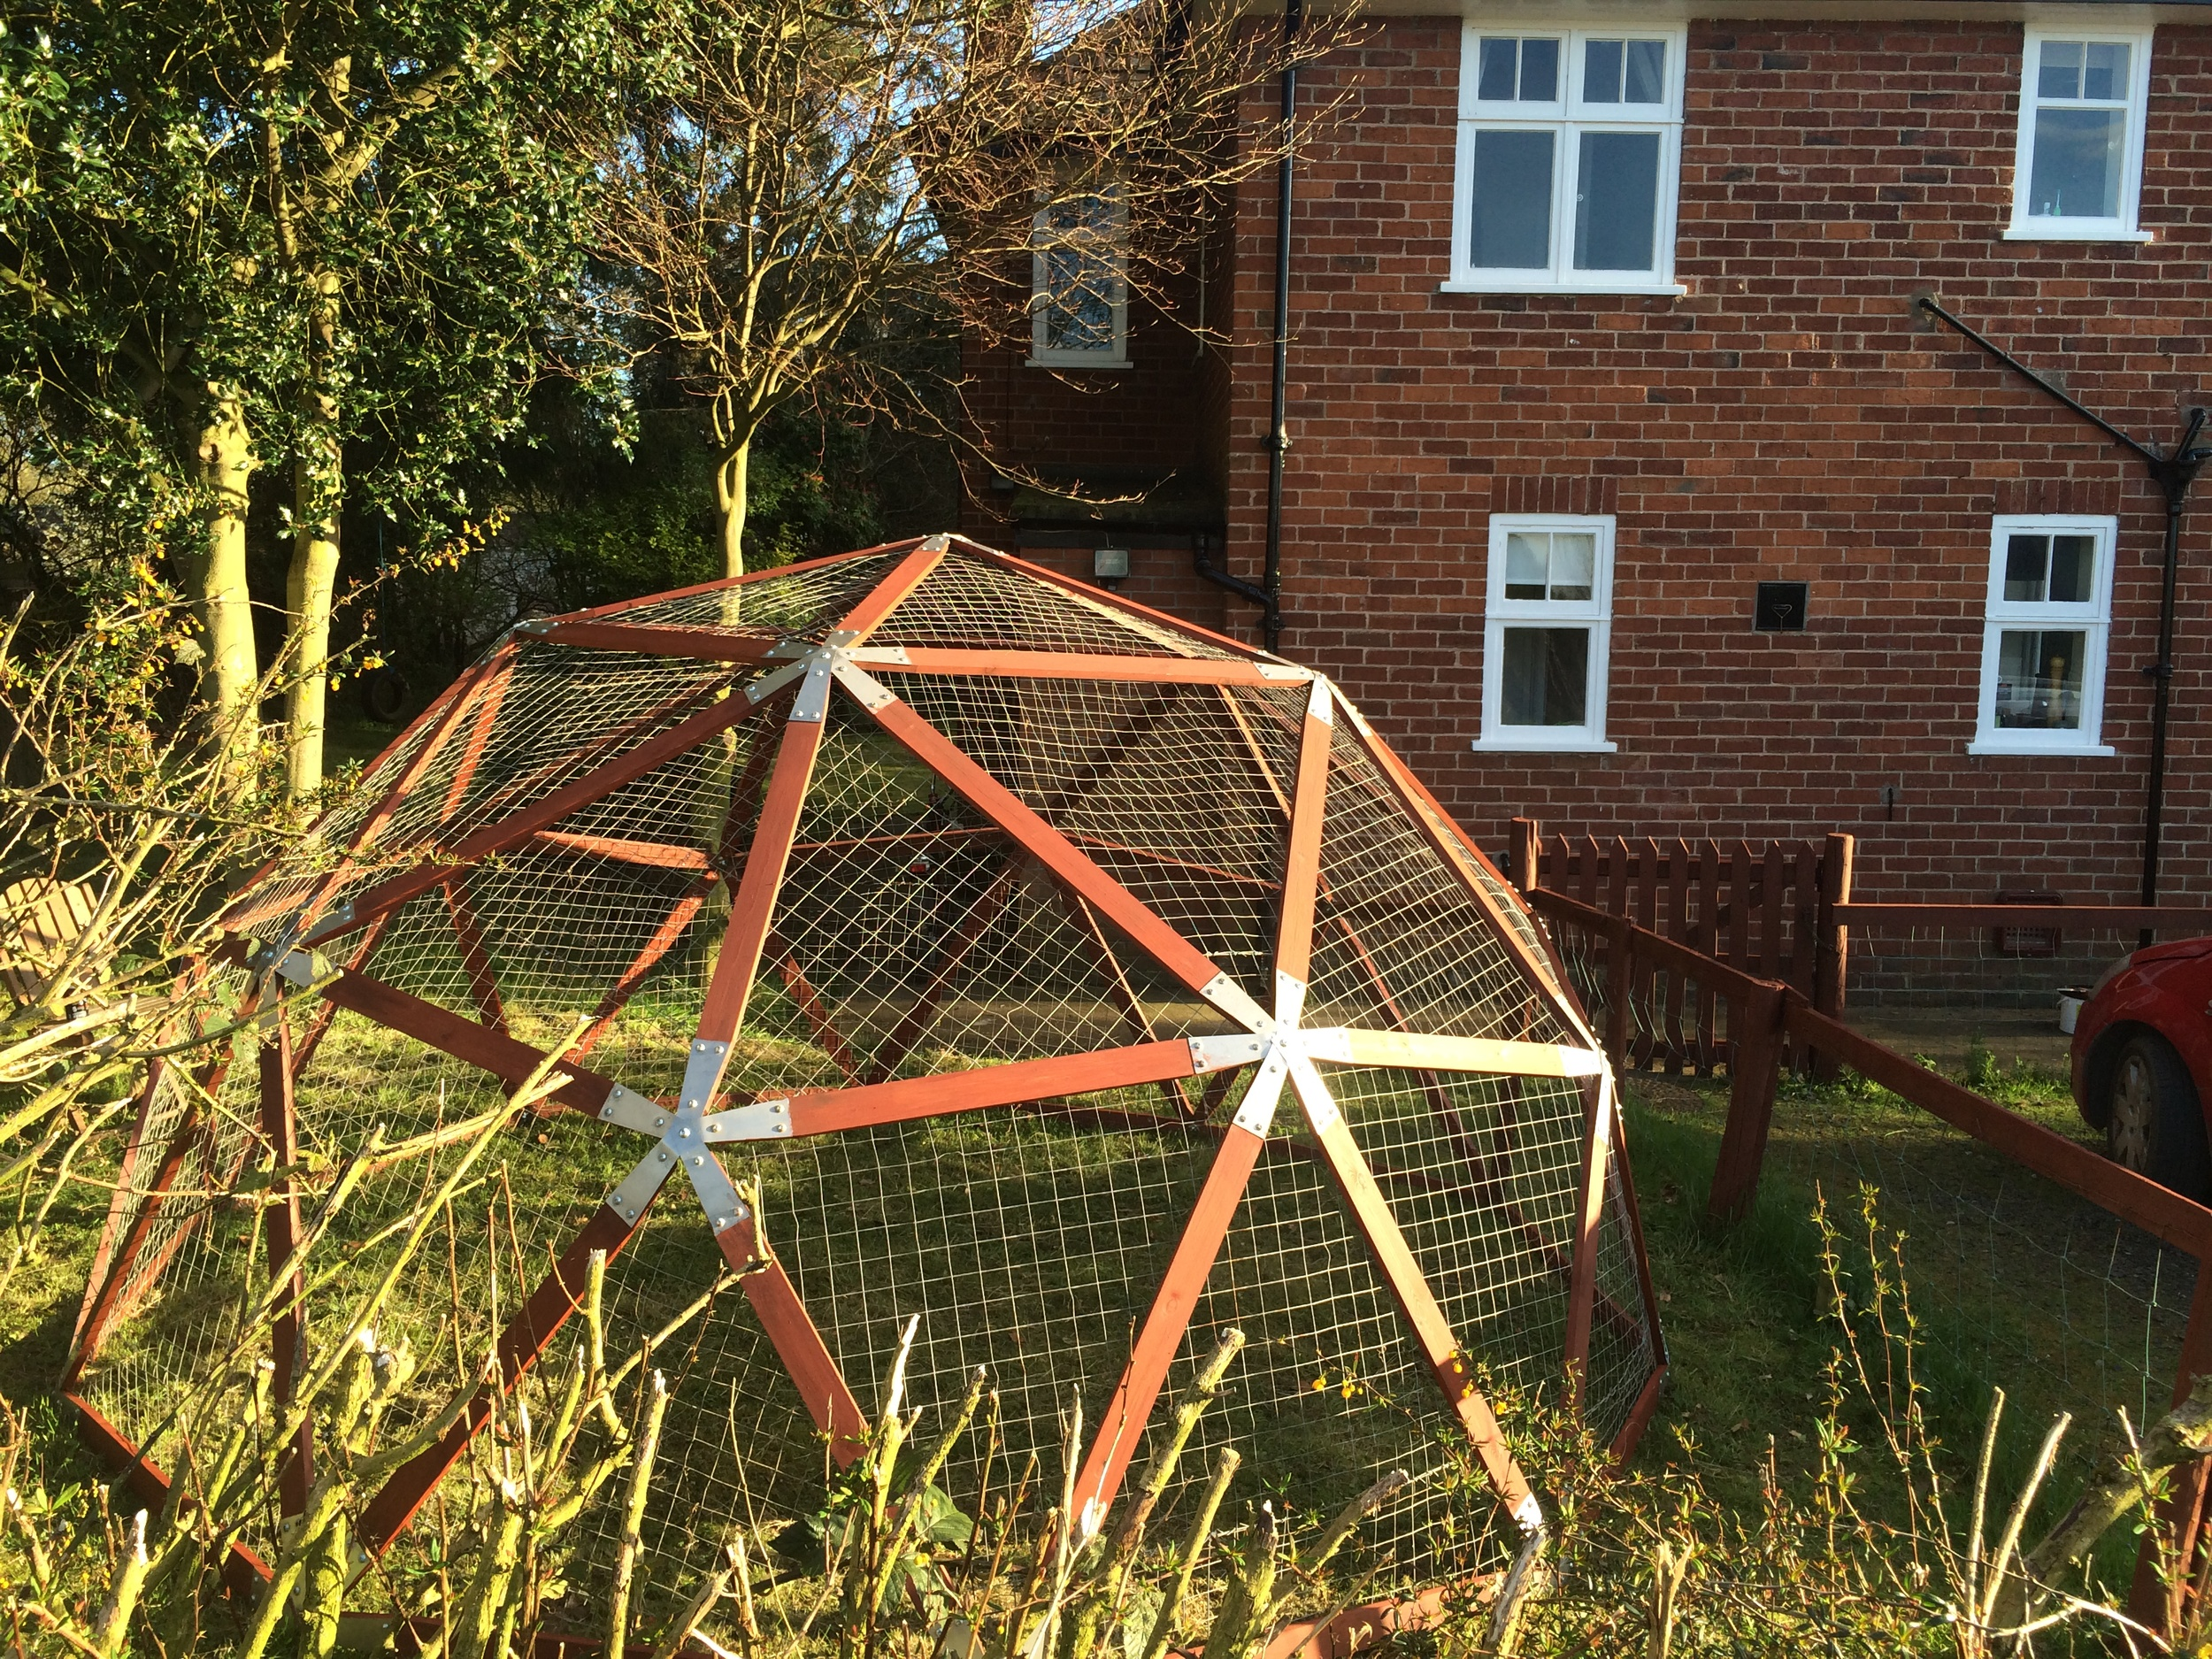 The dome frame with wire netting attached